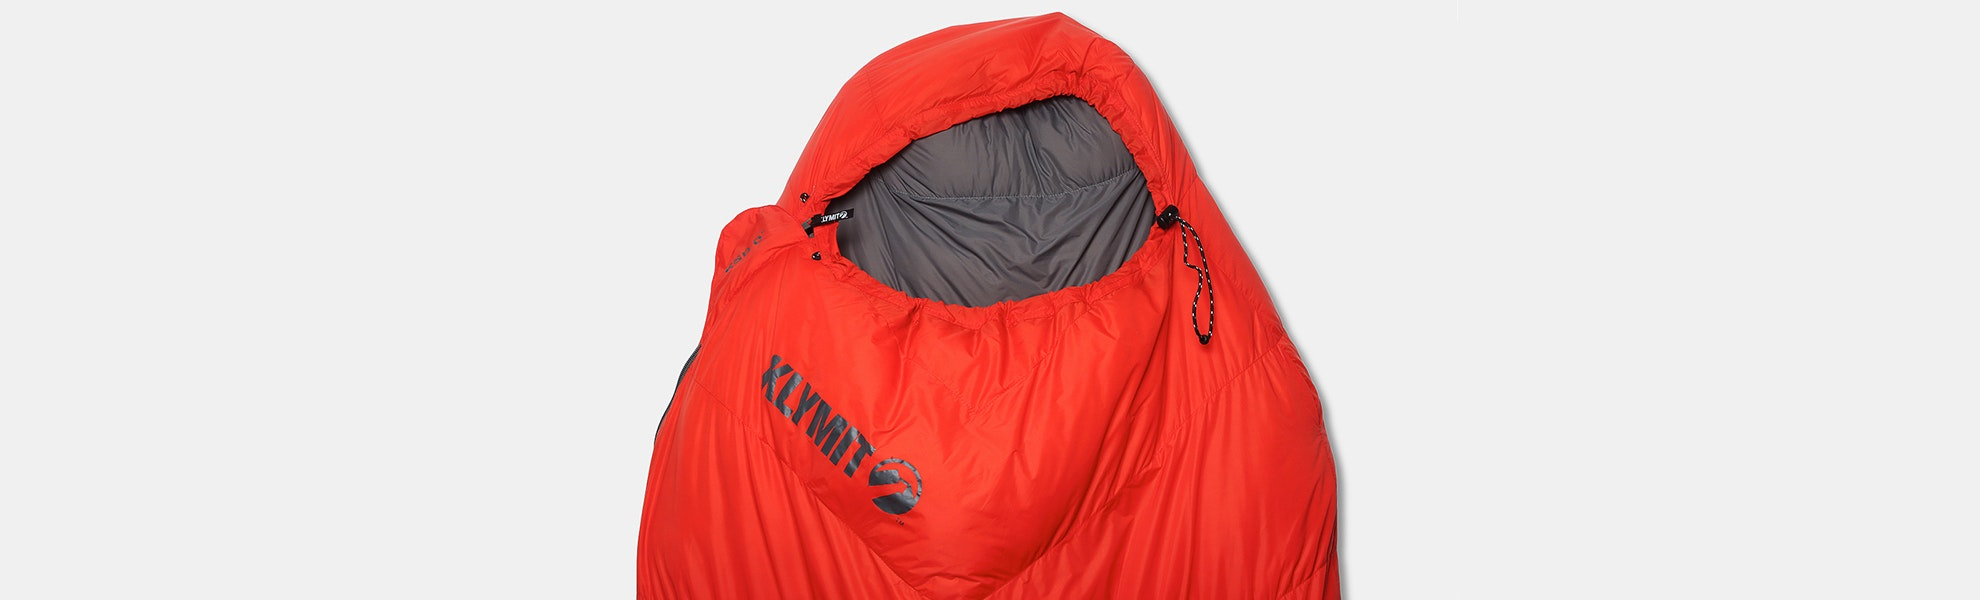 Klymit KSB 0 & 20 Down Sleeping Bags